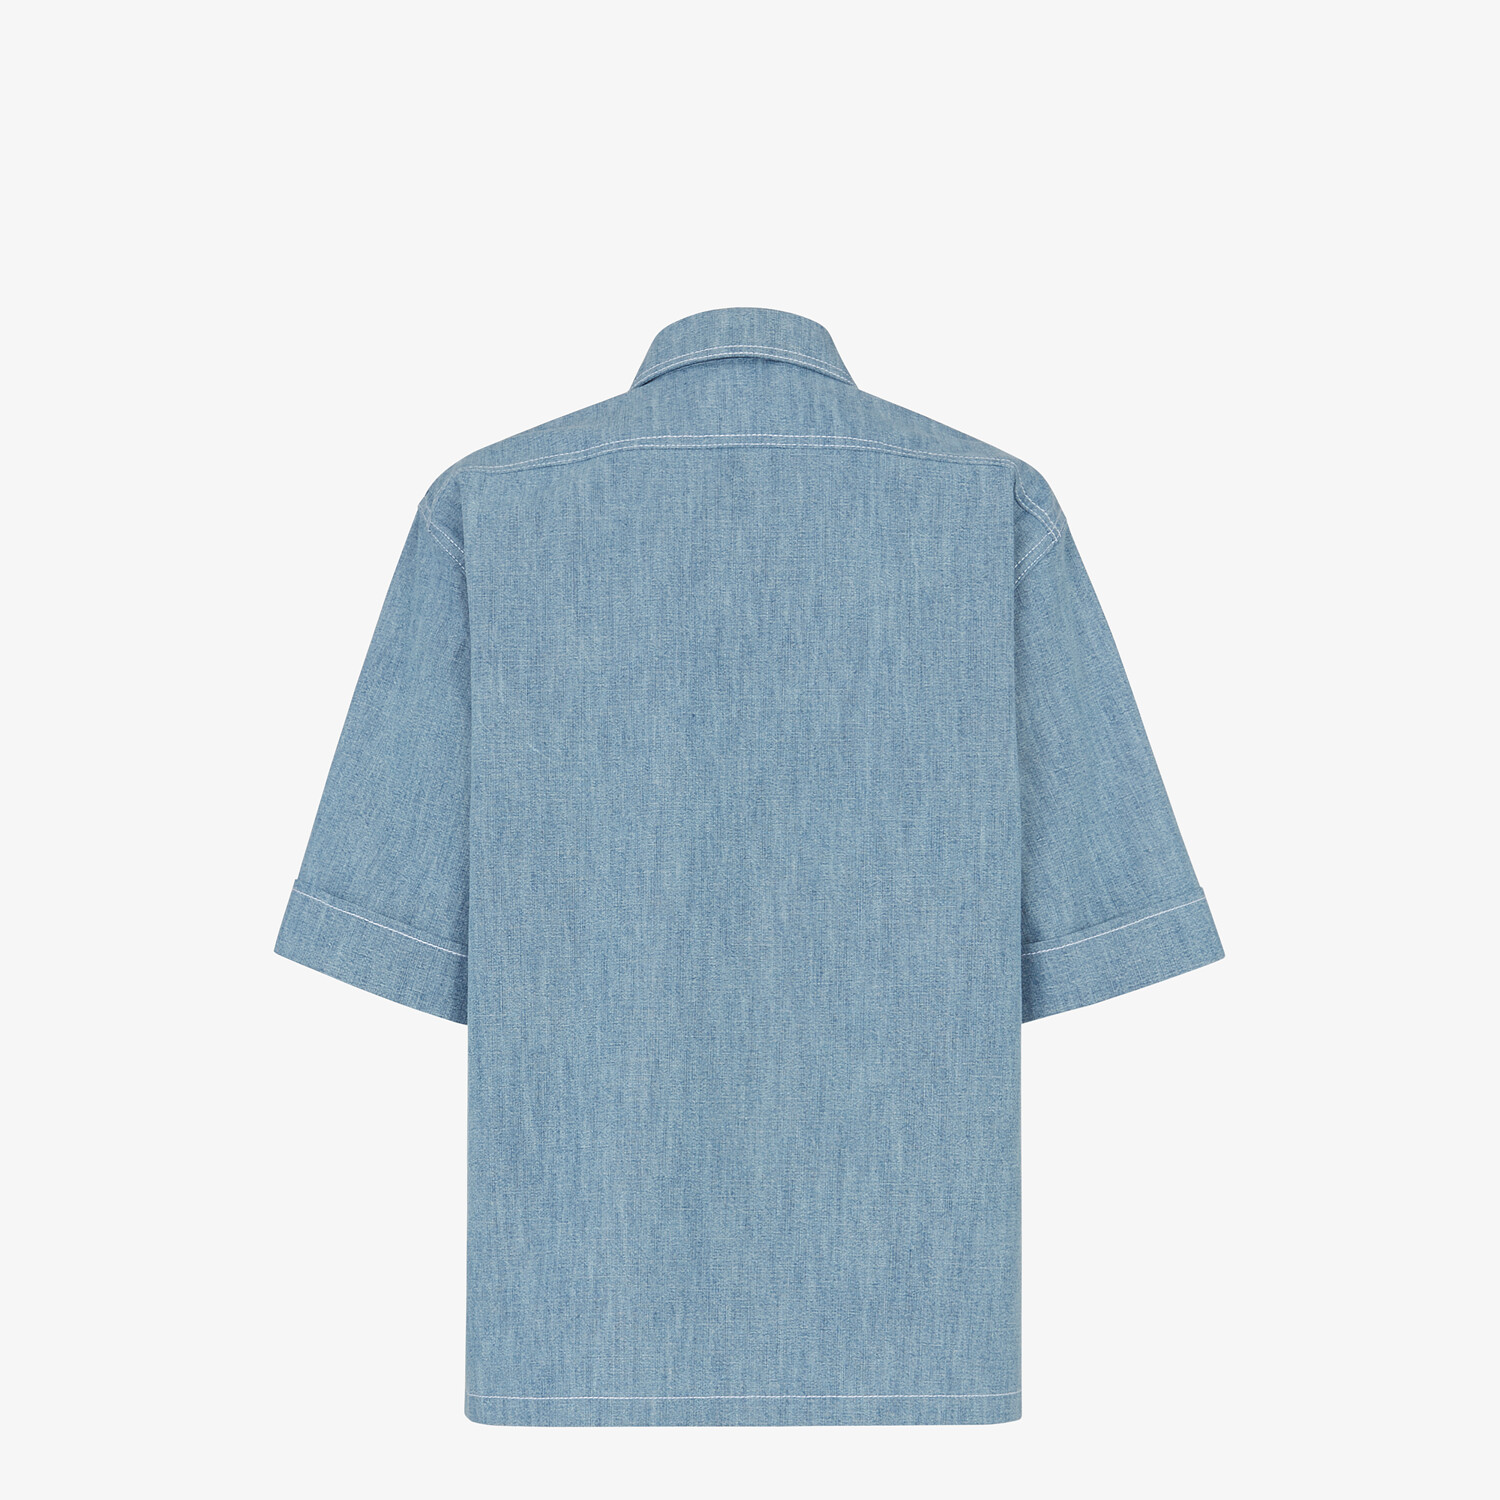 FENDI SHIRT - Light blue chambray shirt - view 2 detail